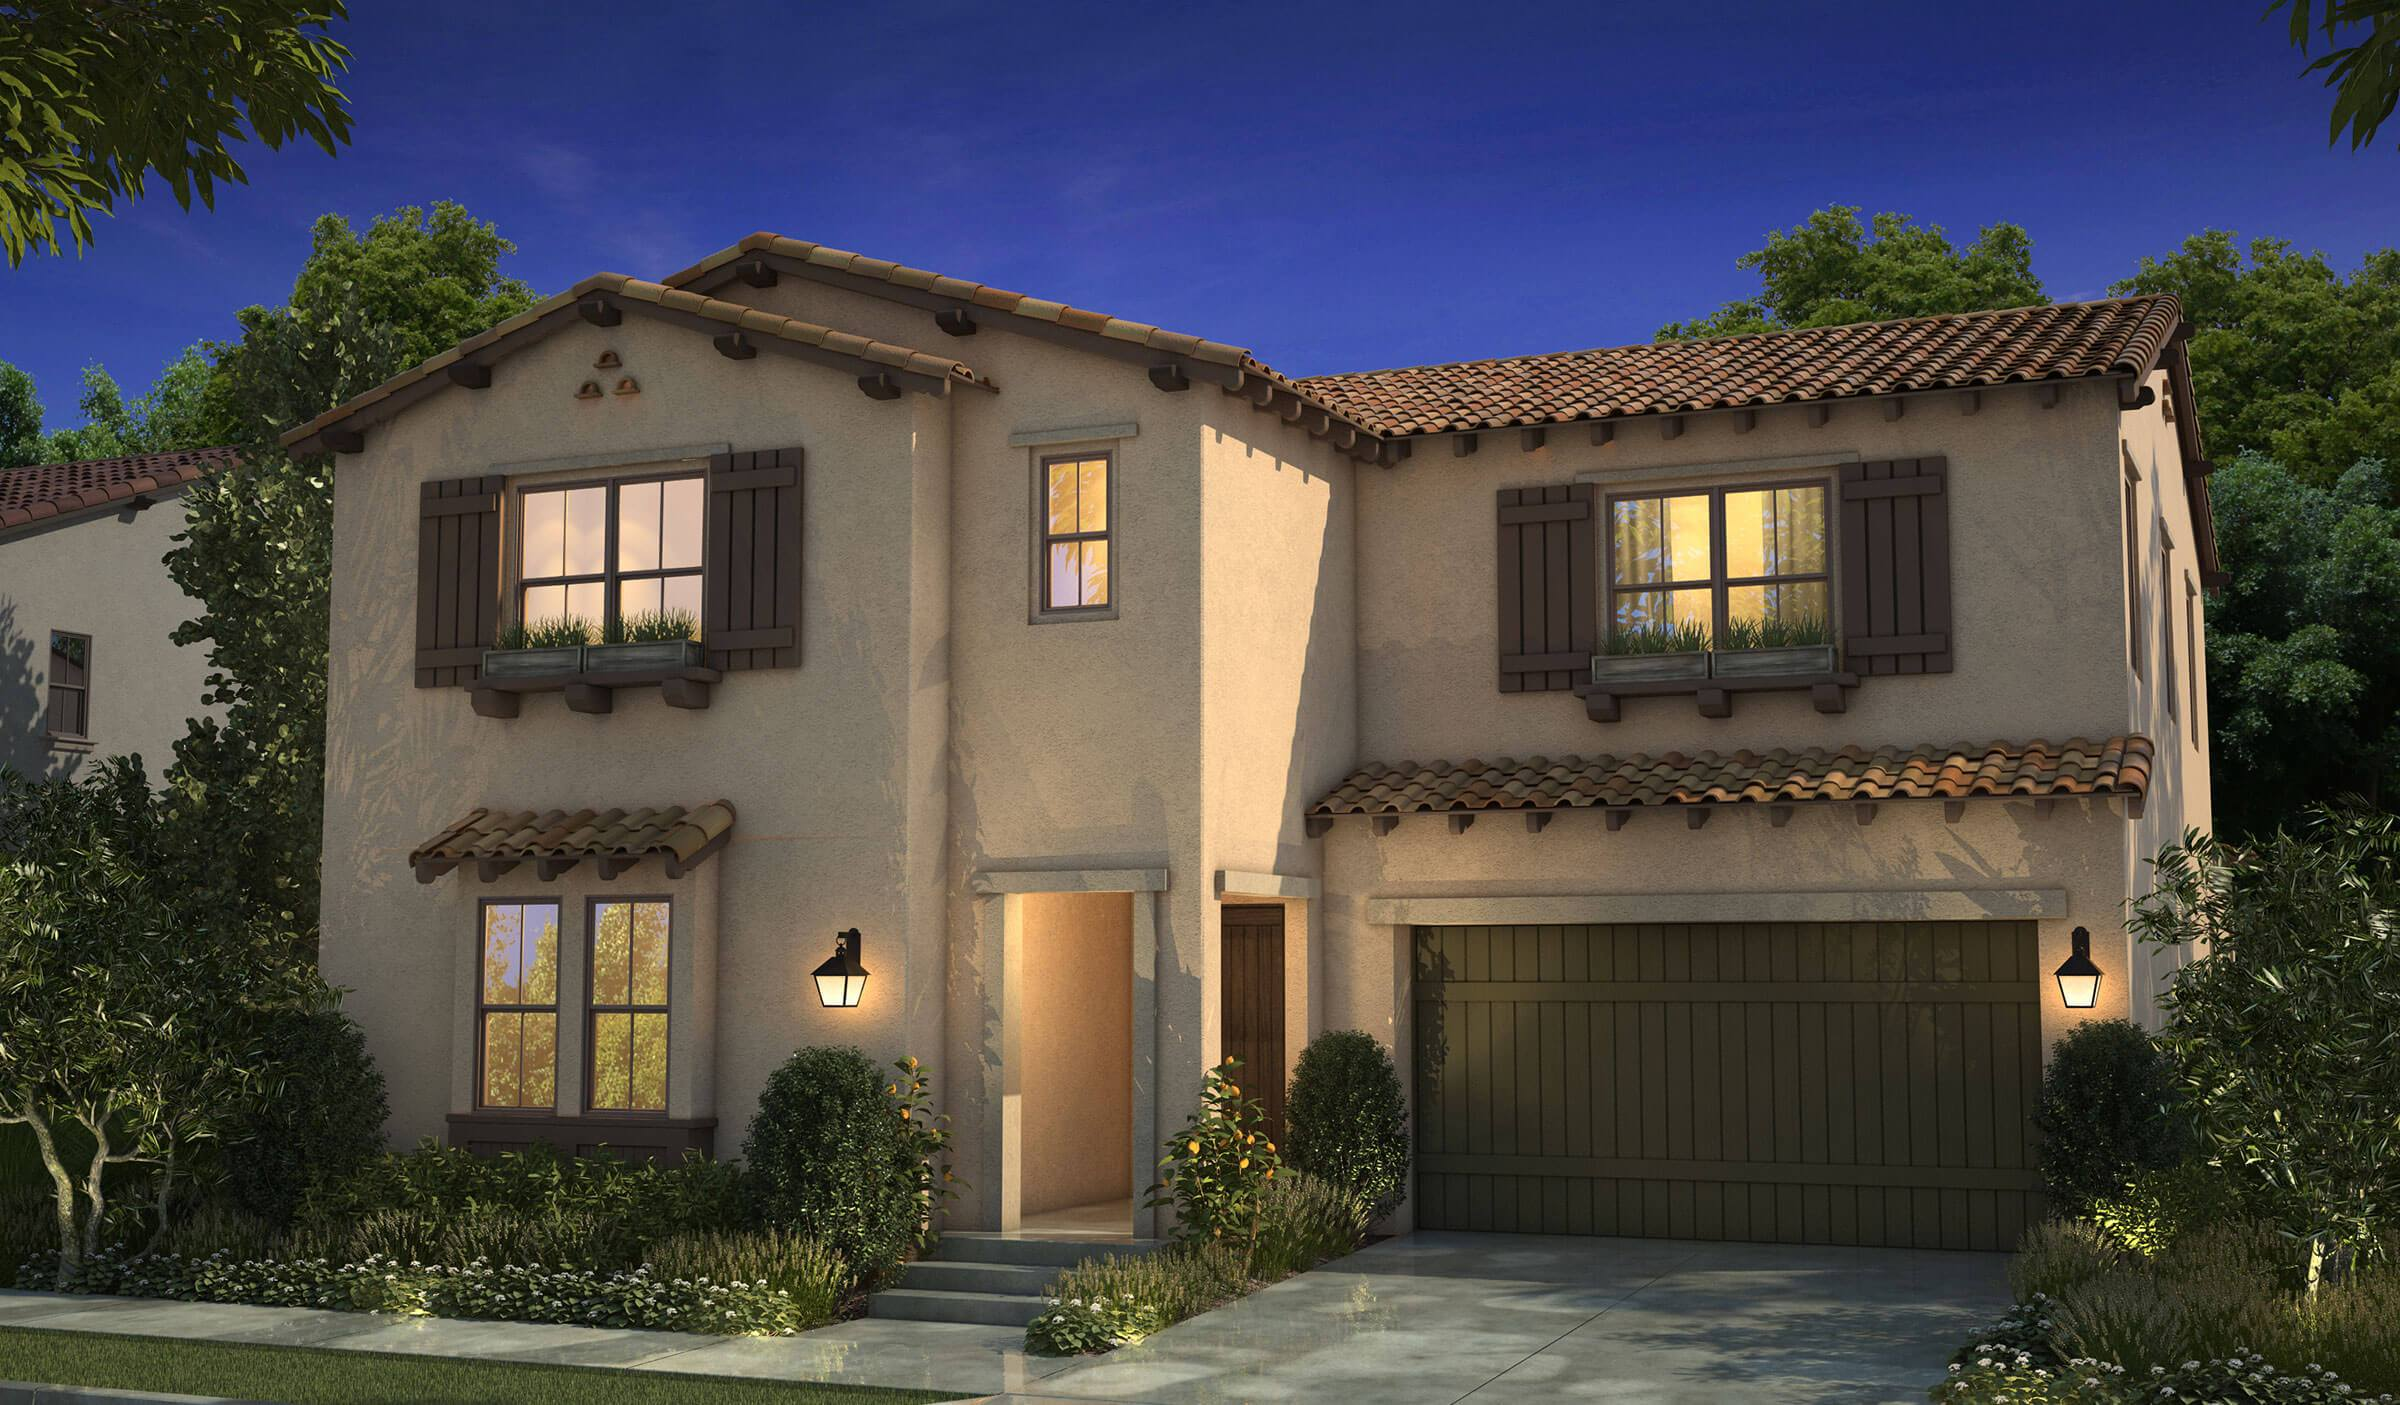 Single Family for Sale at Calistoga At Eastwood Village - Residence 3 109 Frontier Irvine, California 92620 United States